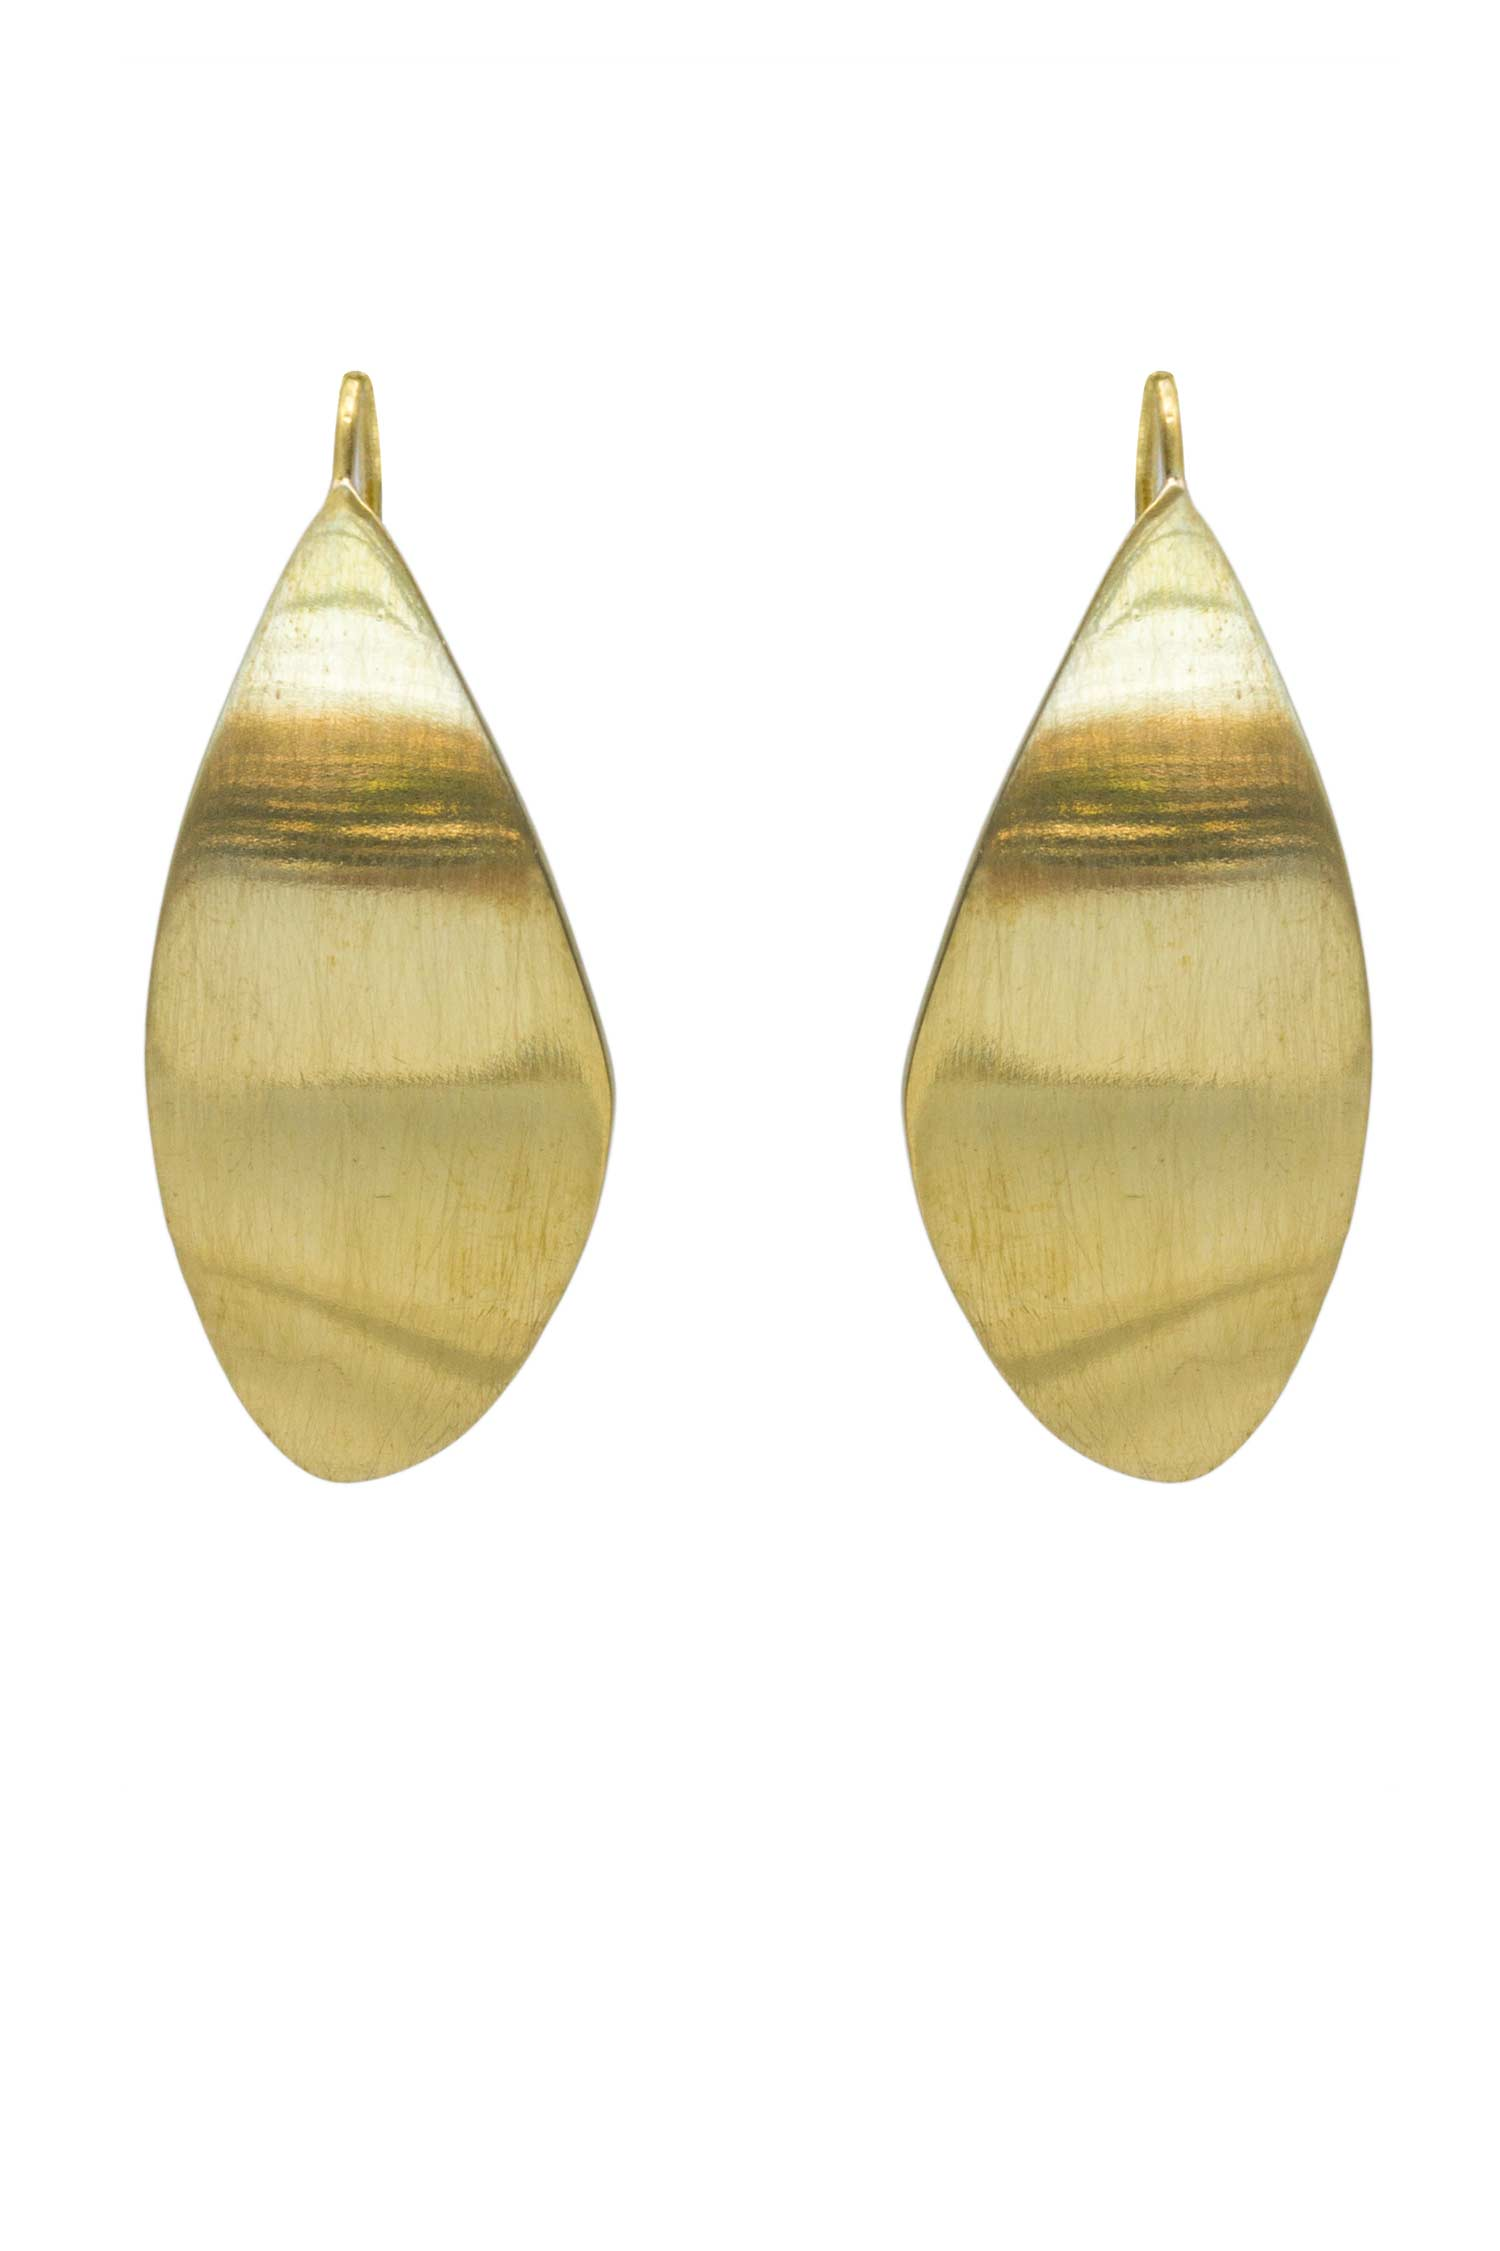 Soko Ethical Jewelry Tulla Threader Earrings in Recycled Brass